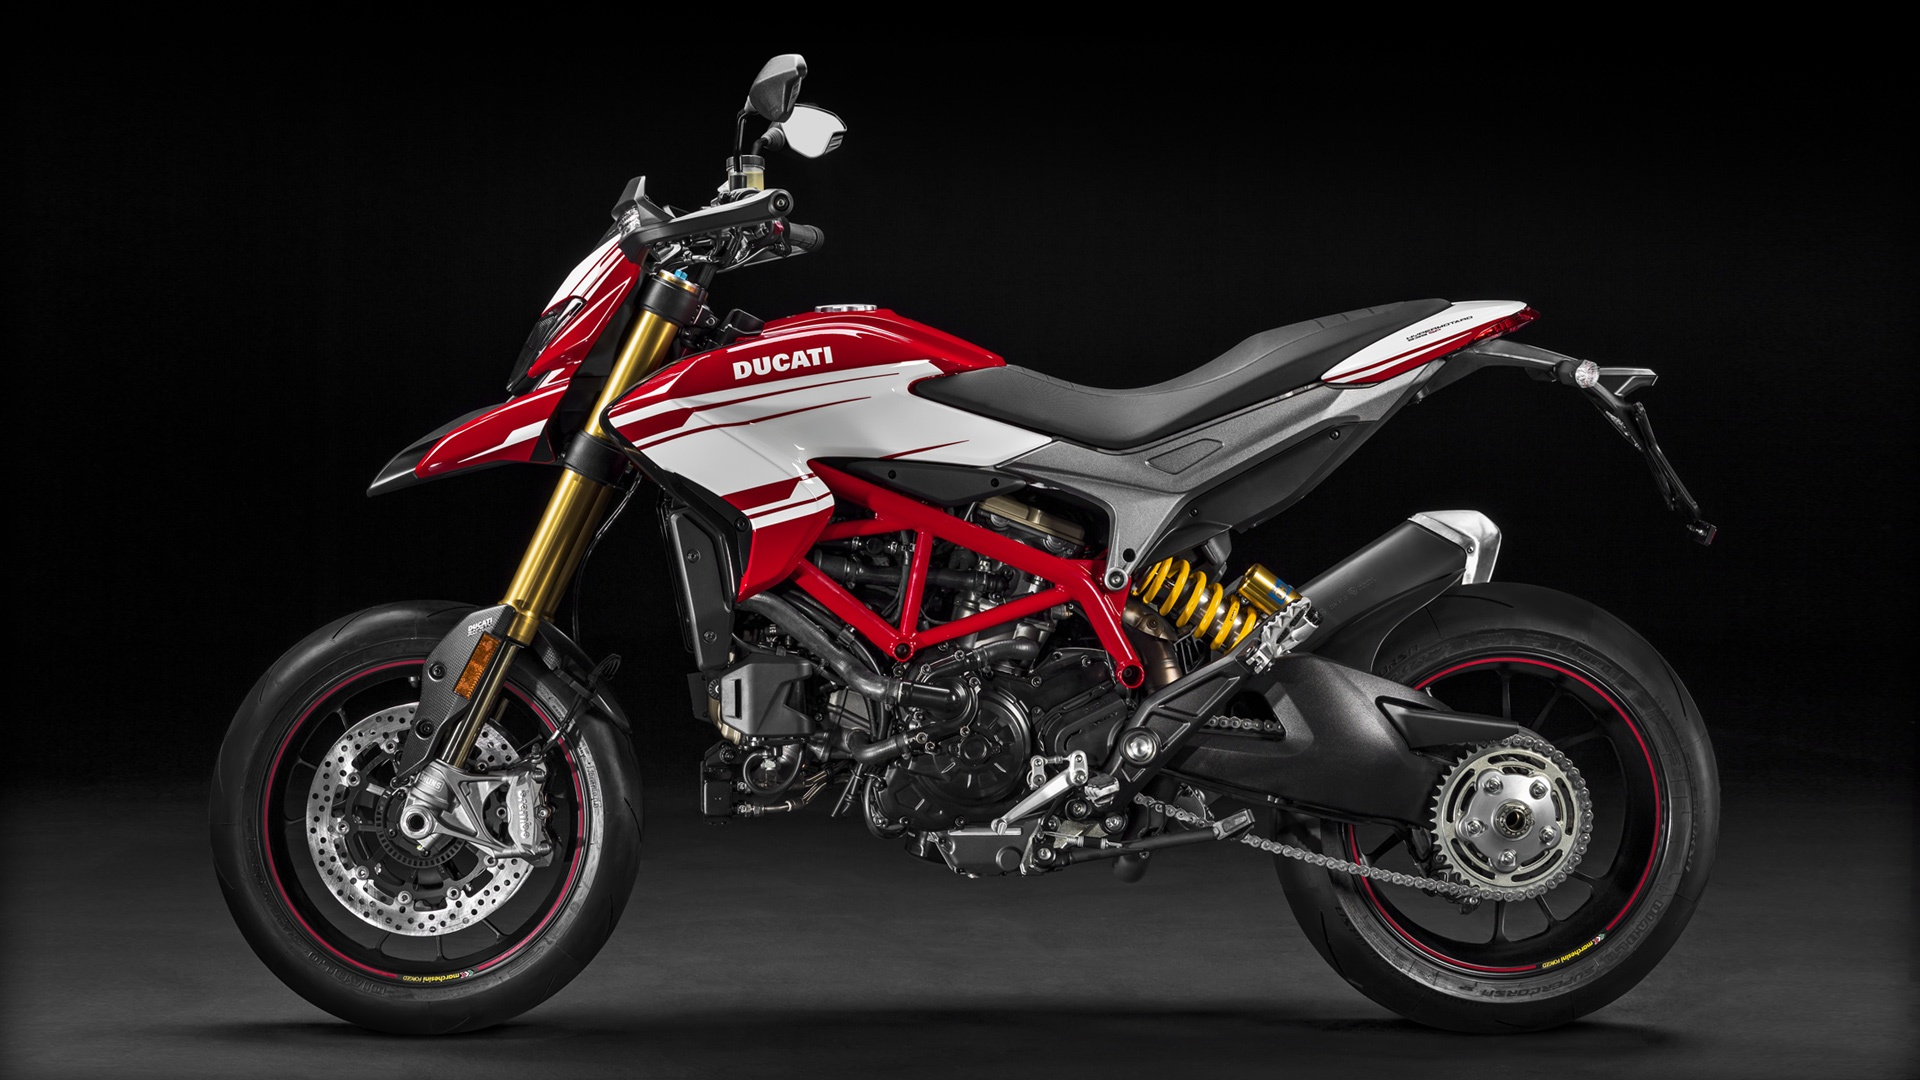 ducati hypermotard 939 sp for sale uk ducati manchester. Black Bedroom Furniture Sets. Home Design Ideas